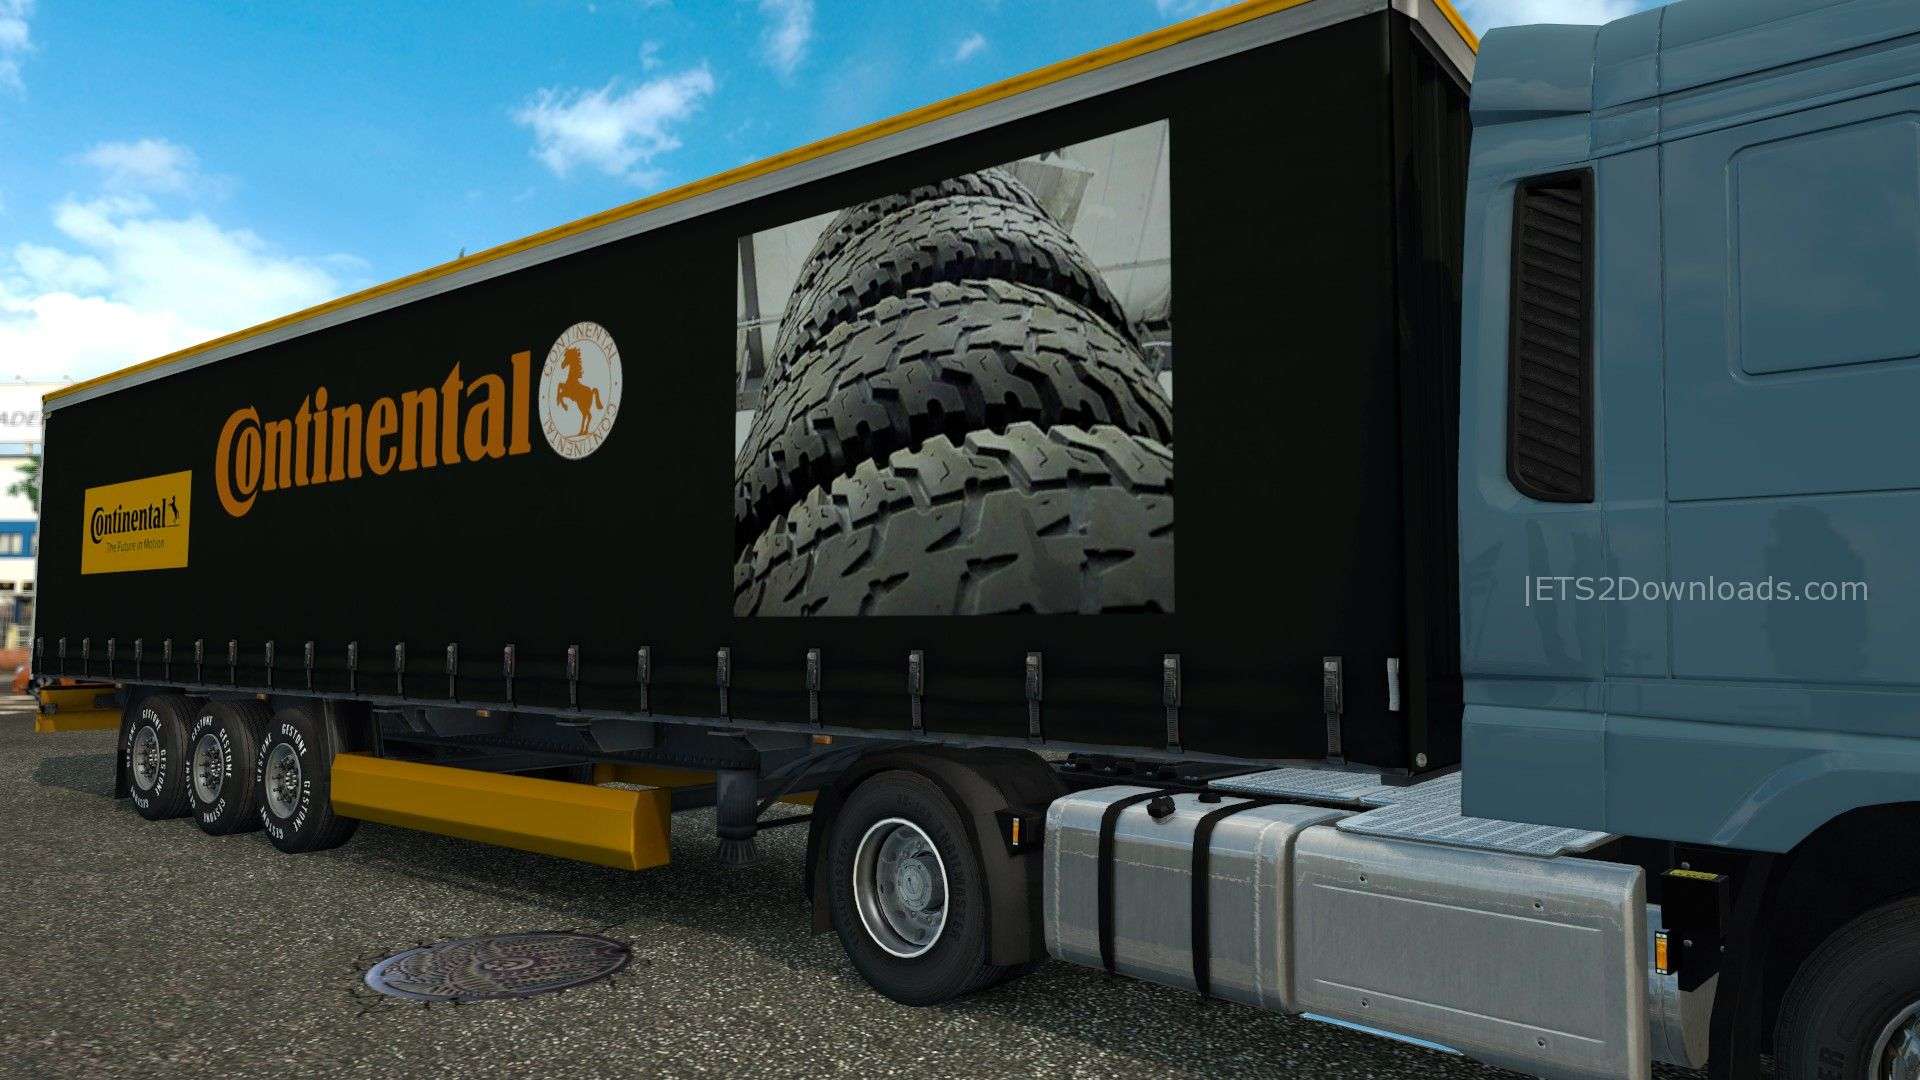 continental-trailer-2